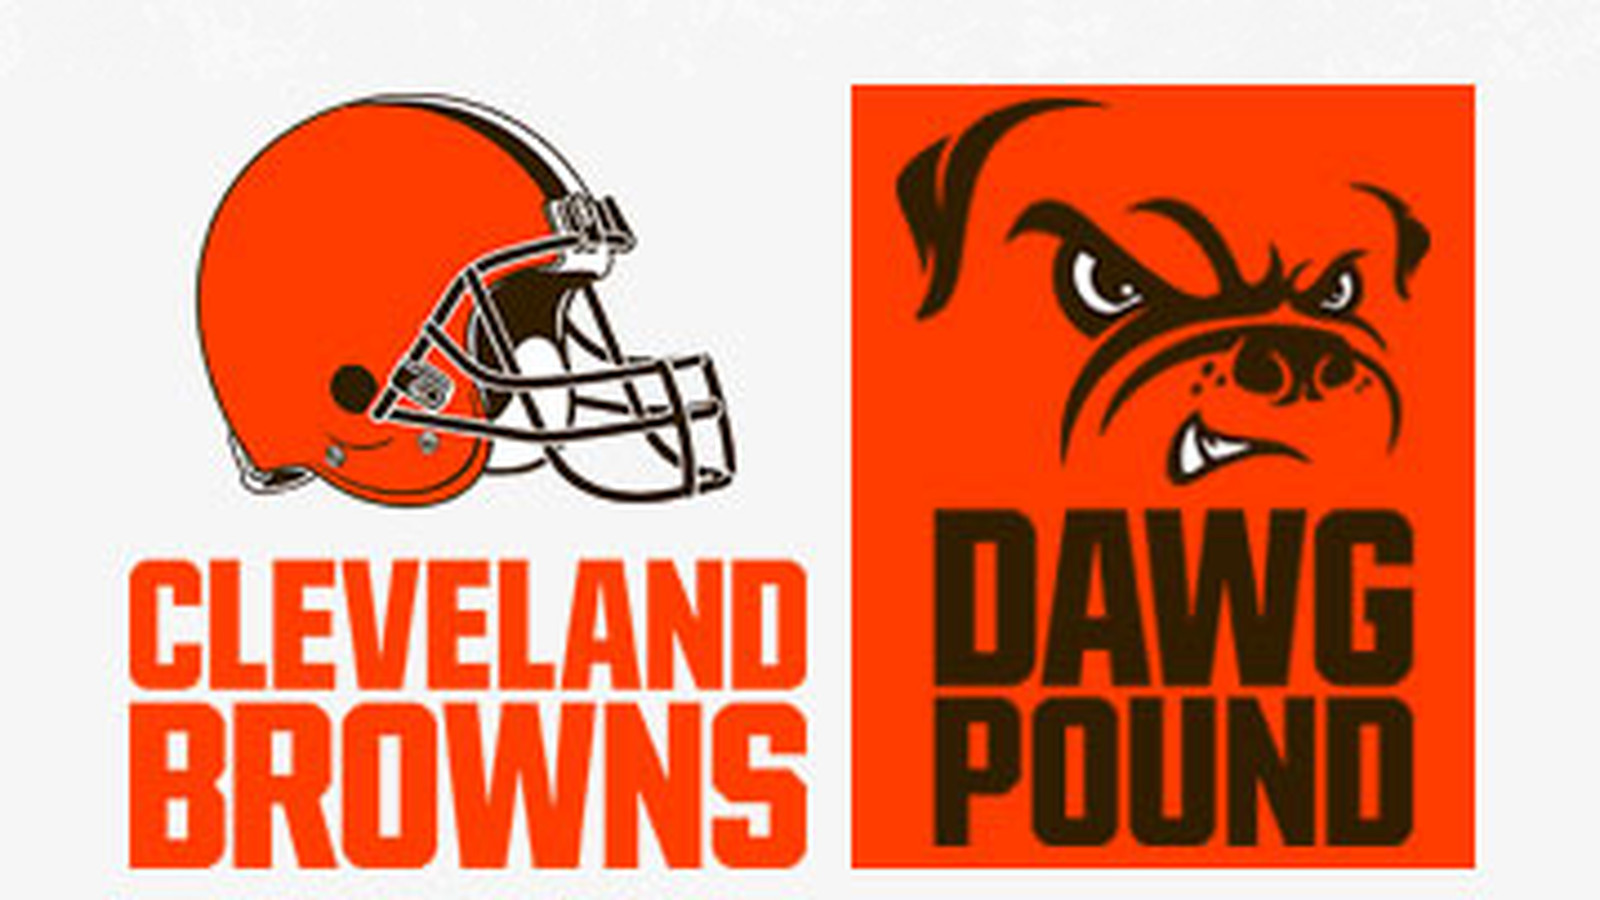 The Browns have a new logo that looks like the old logo ...